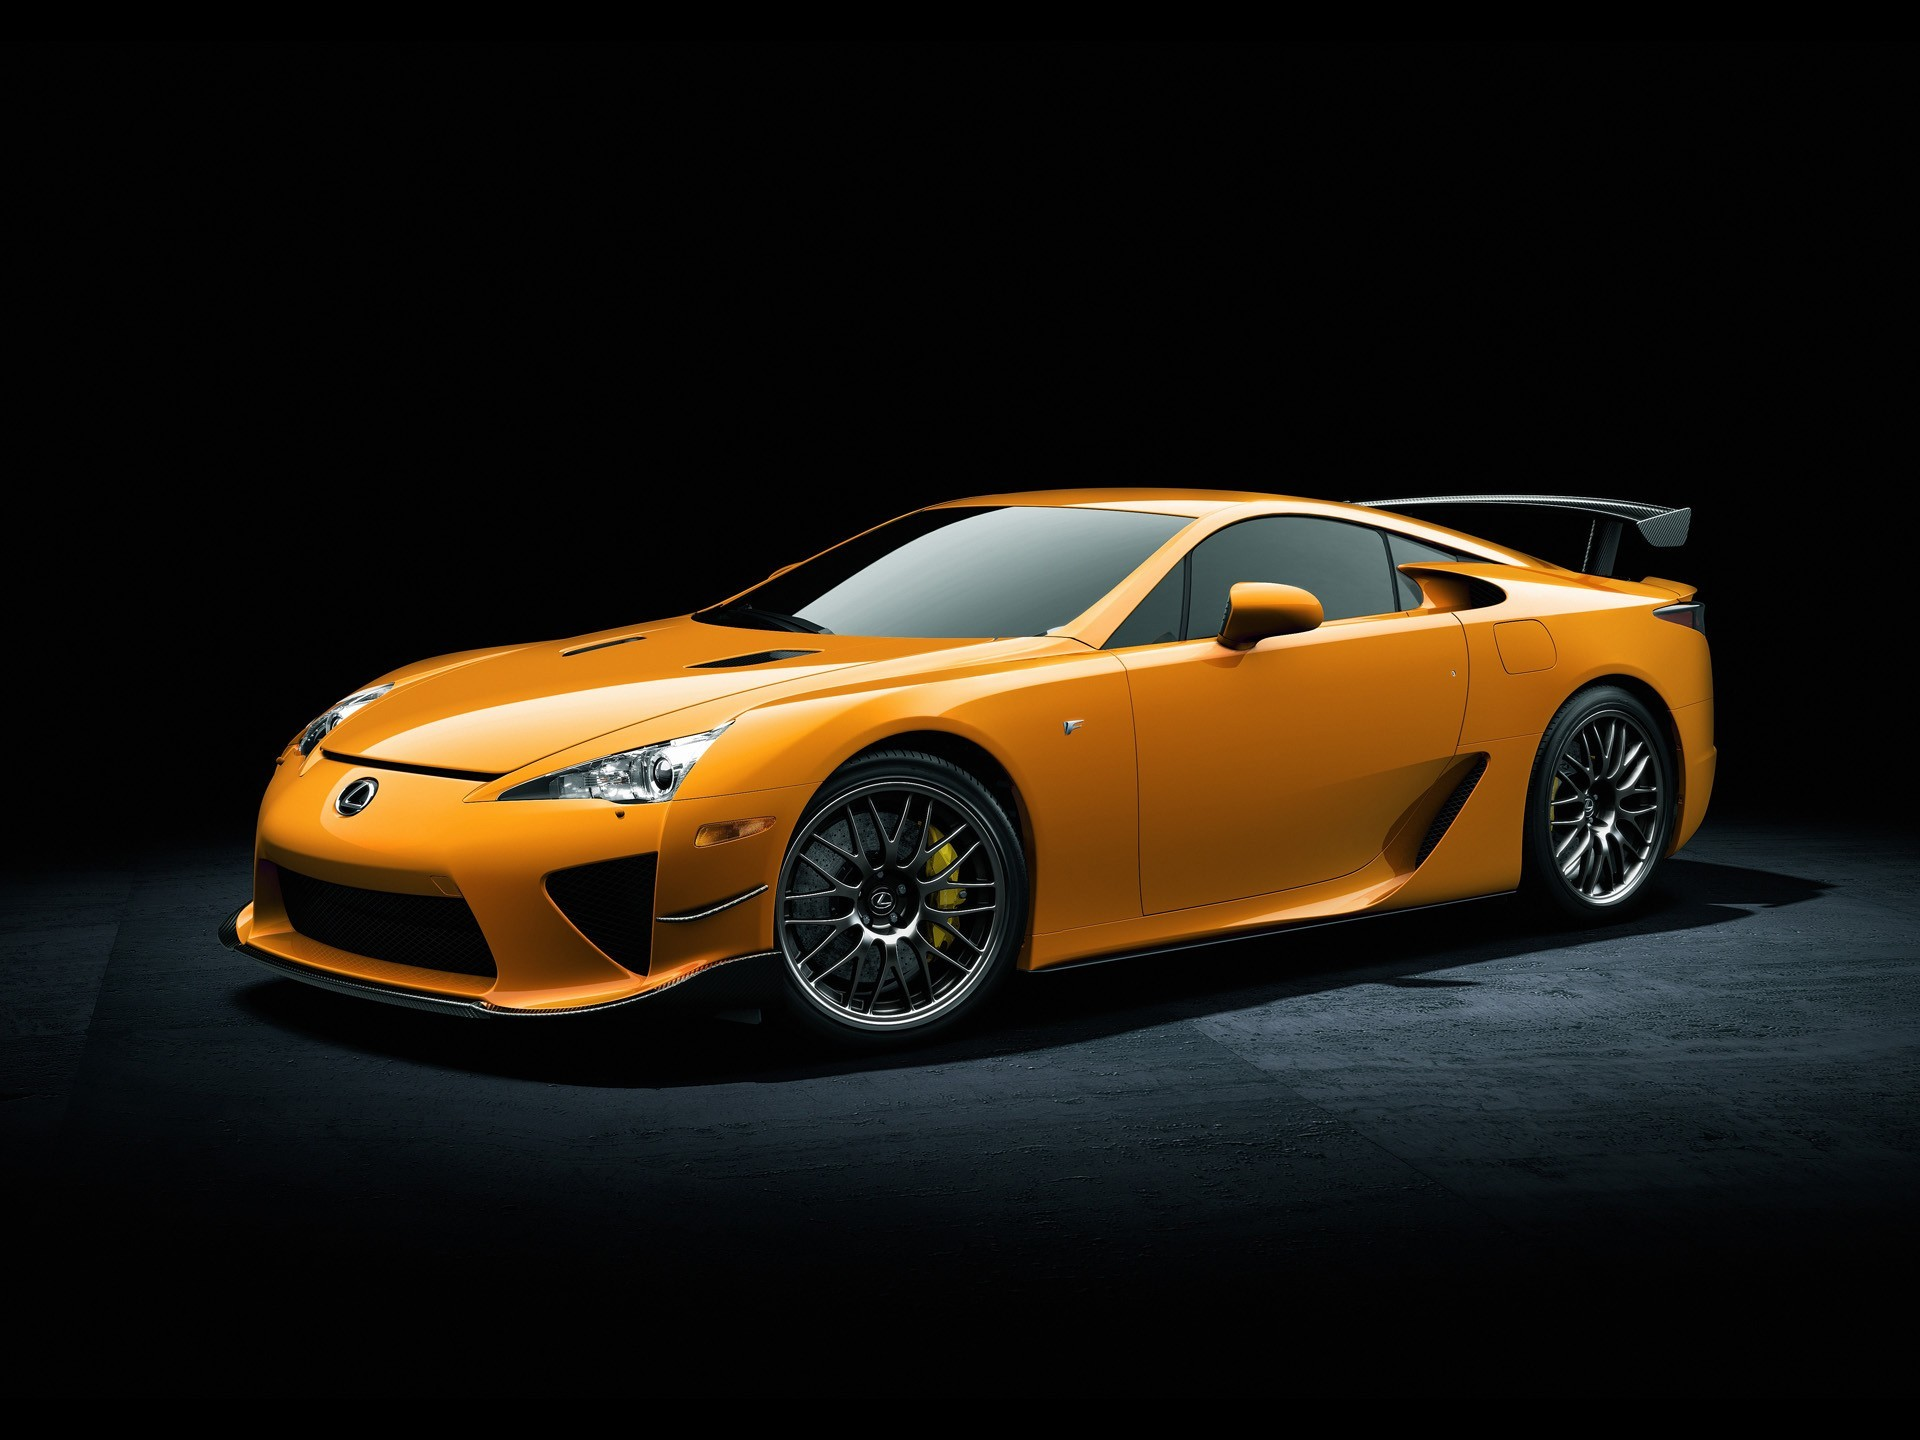 1920x1440 Cars Lexus vehicles Lexus LFA black background front angle view wallpaper |   | 209906 | WallpaperUP